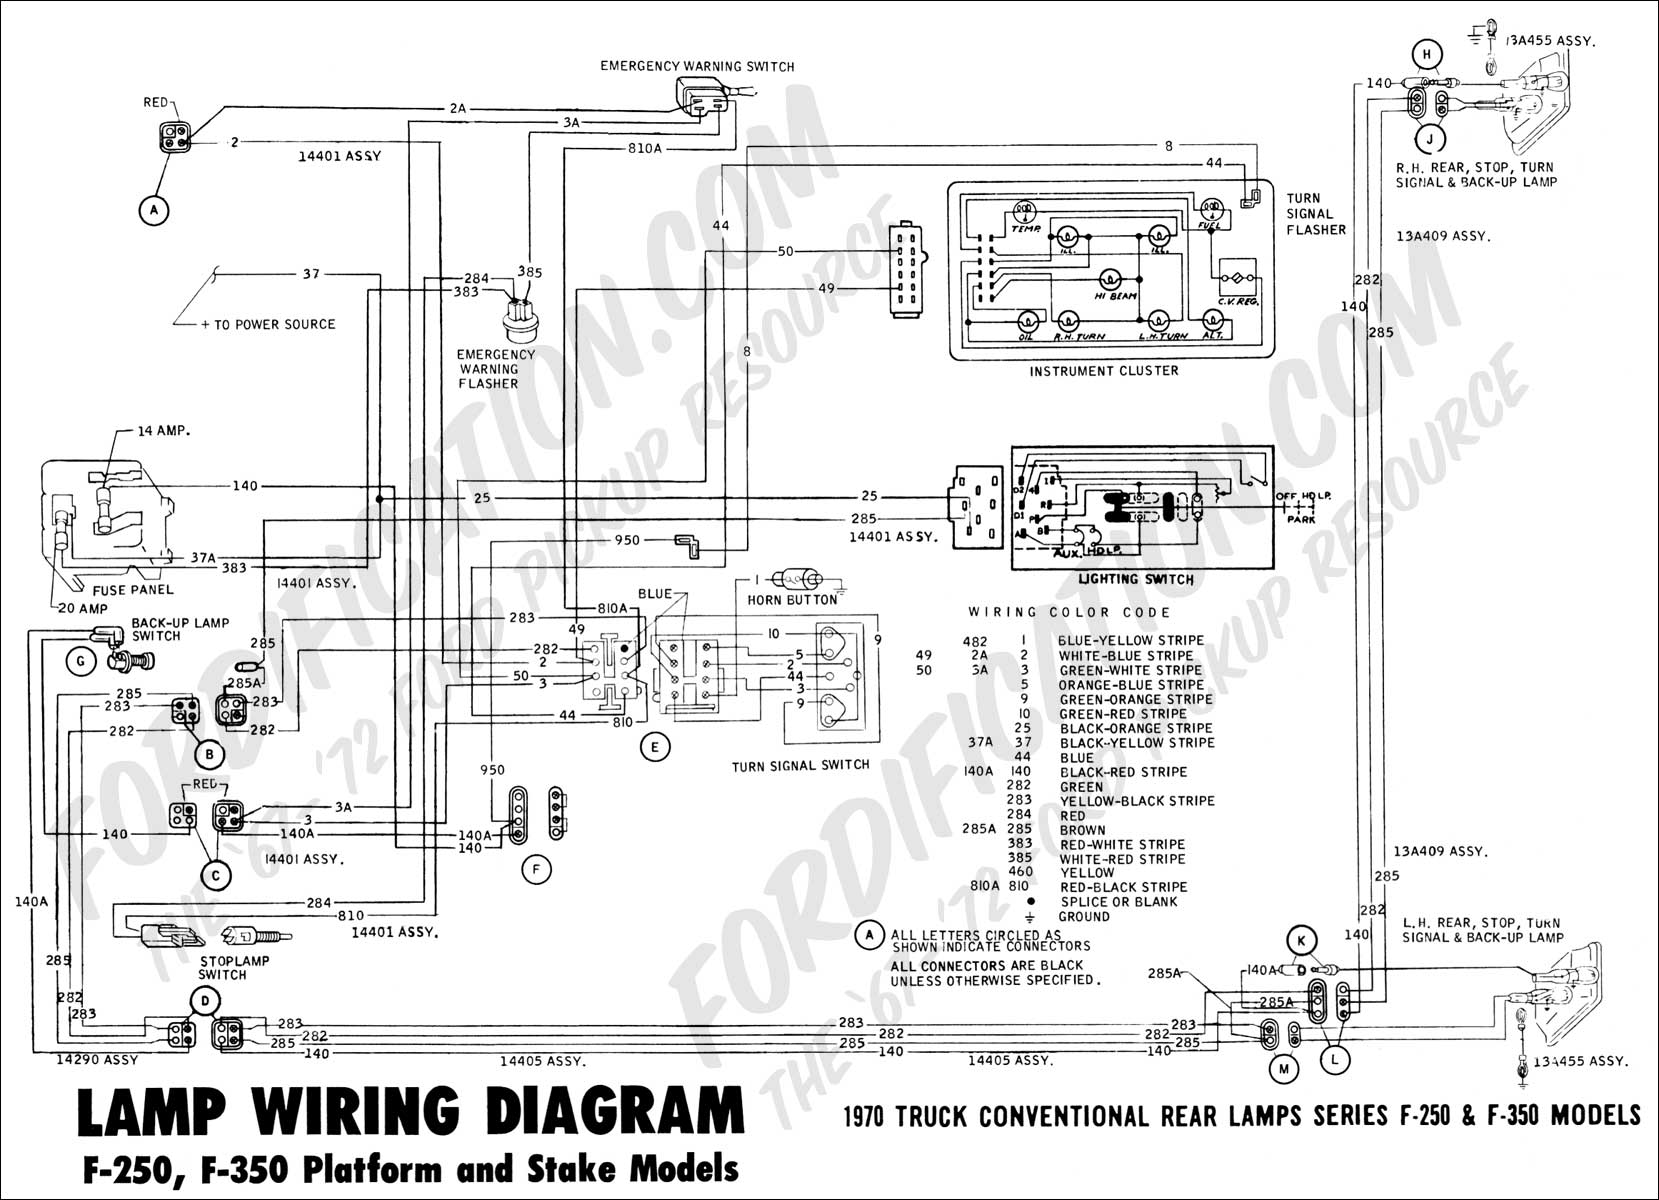 hight resolution of 1999 f350 diesel fuse panel diagram images gallery ford truck technical drawings and schematics section